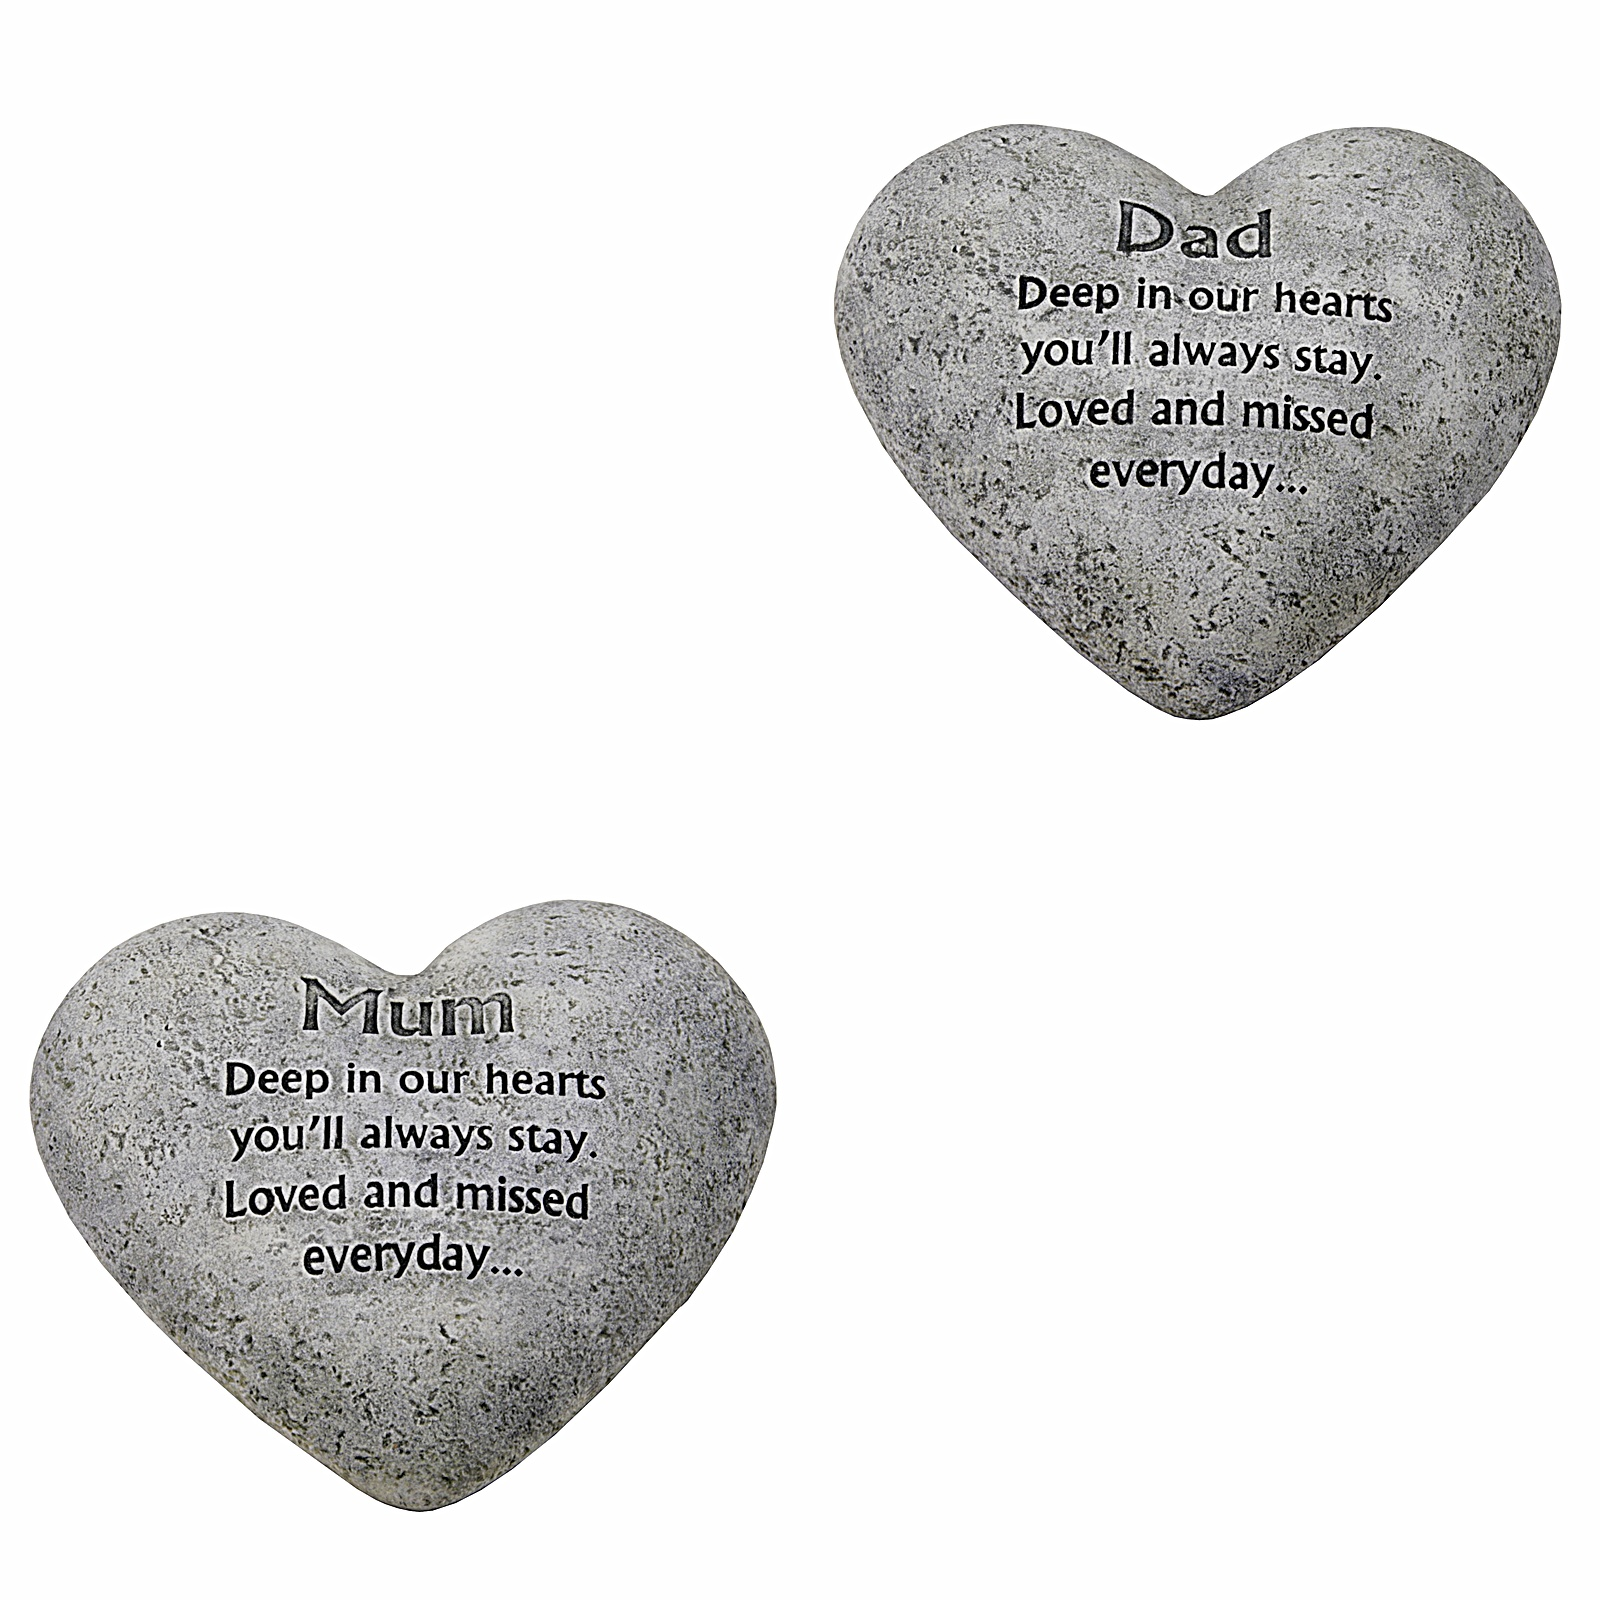 in loving memory graveside heart plaques stone mum and dad grave memorial gift ebay. Black Bedroom Furniture Sets. Home Design Ideas